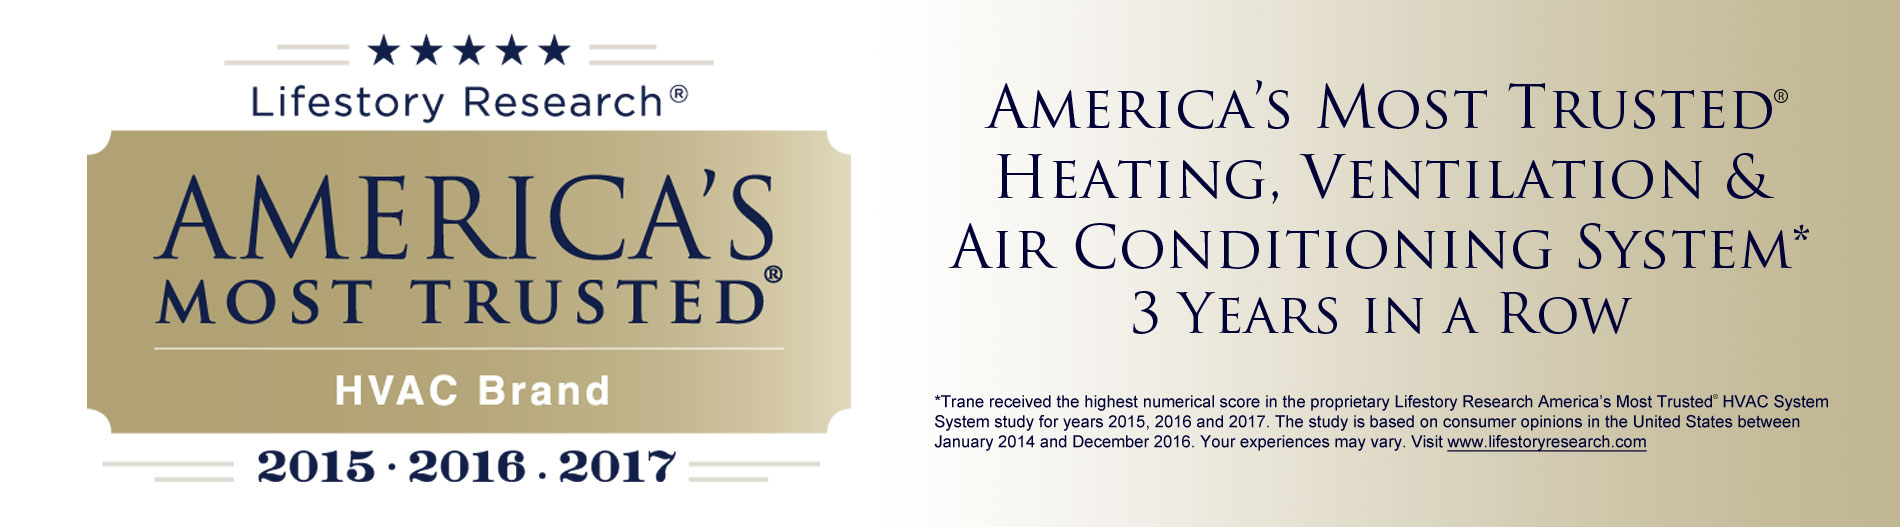 Trane is America's most trusted HVAC (heating, ventilation & Air Conditioning) System.